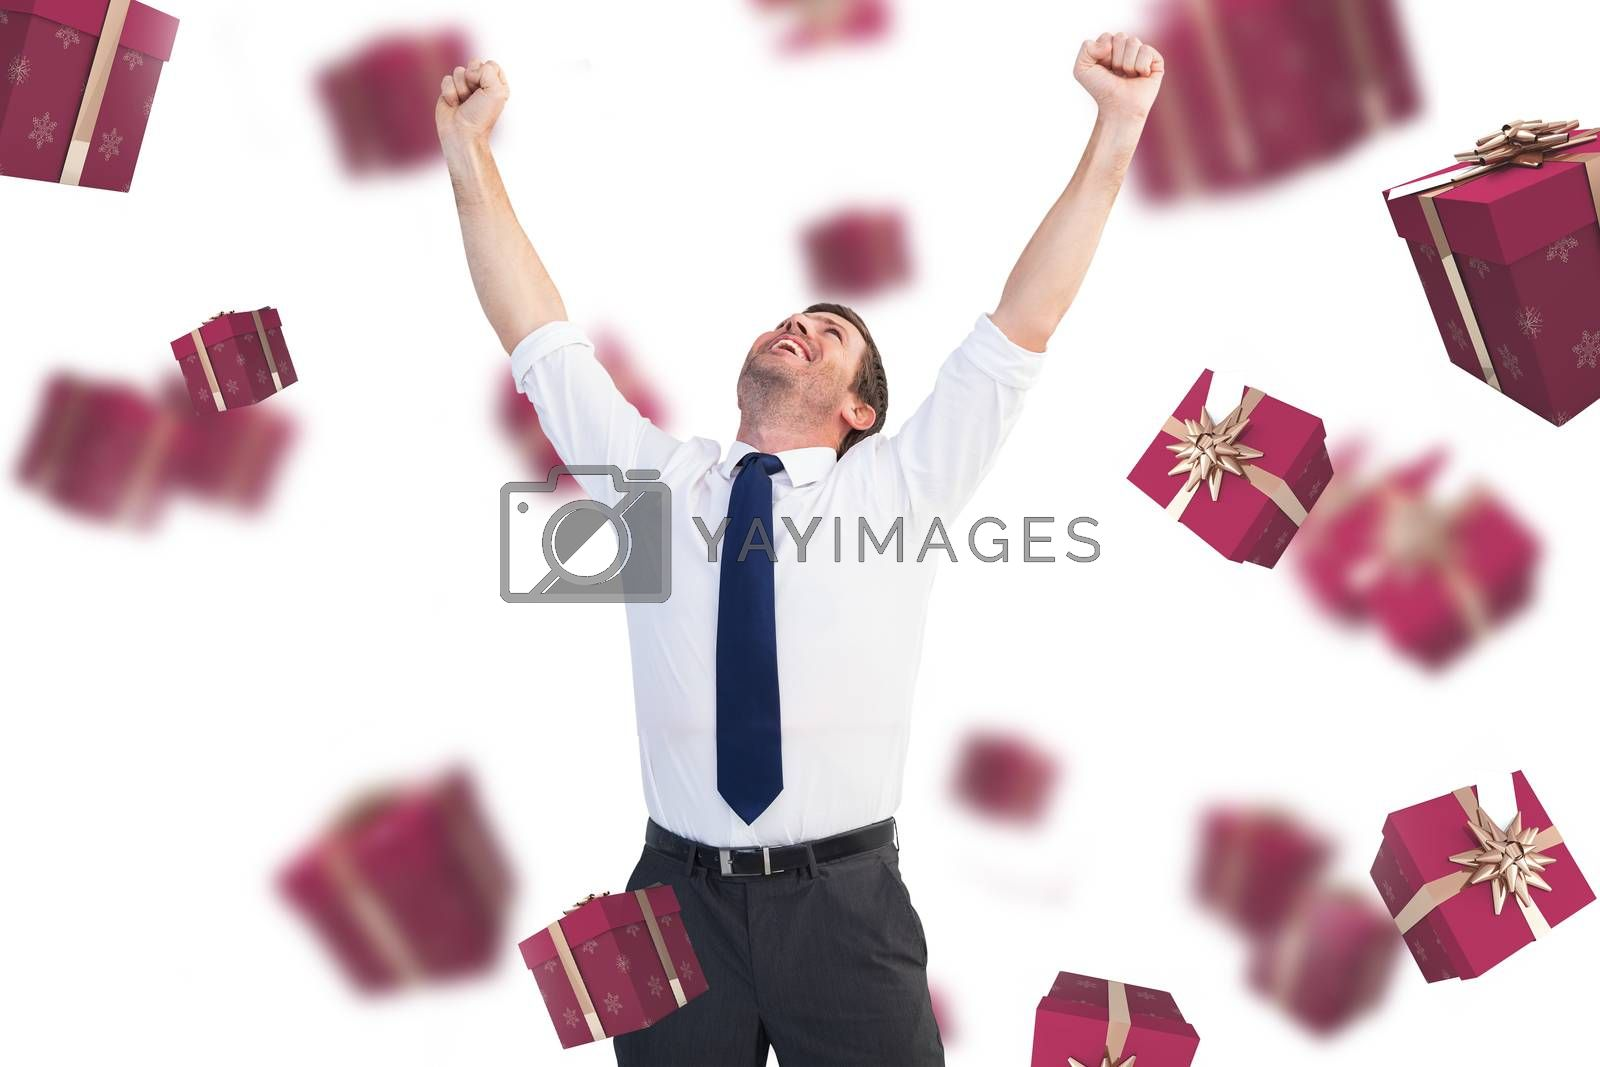 Composite image of cheering businessman by Wavebreakmedia